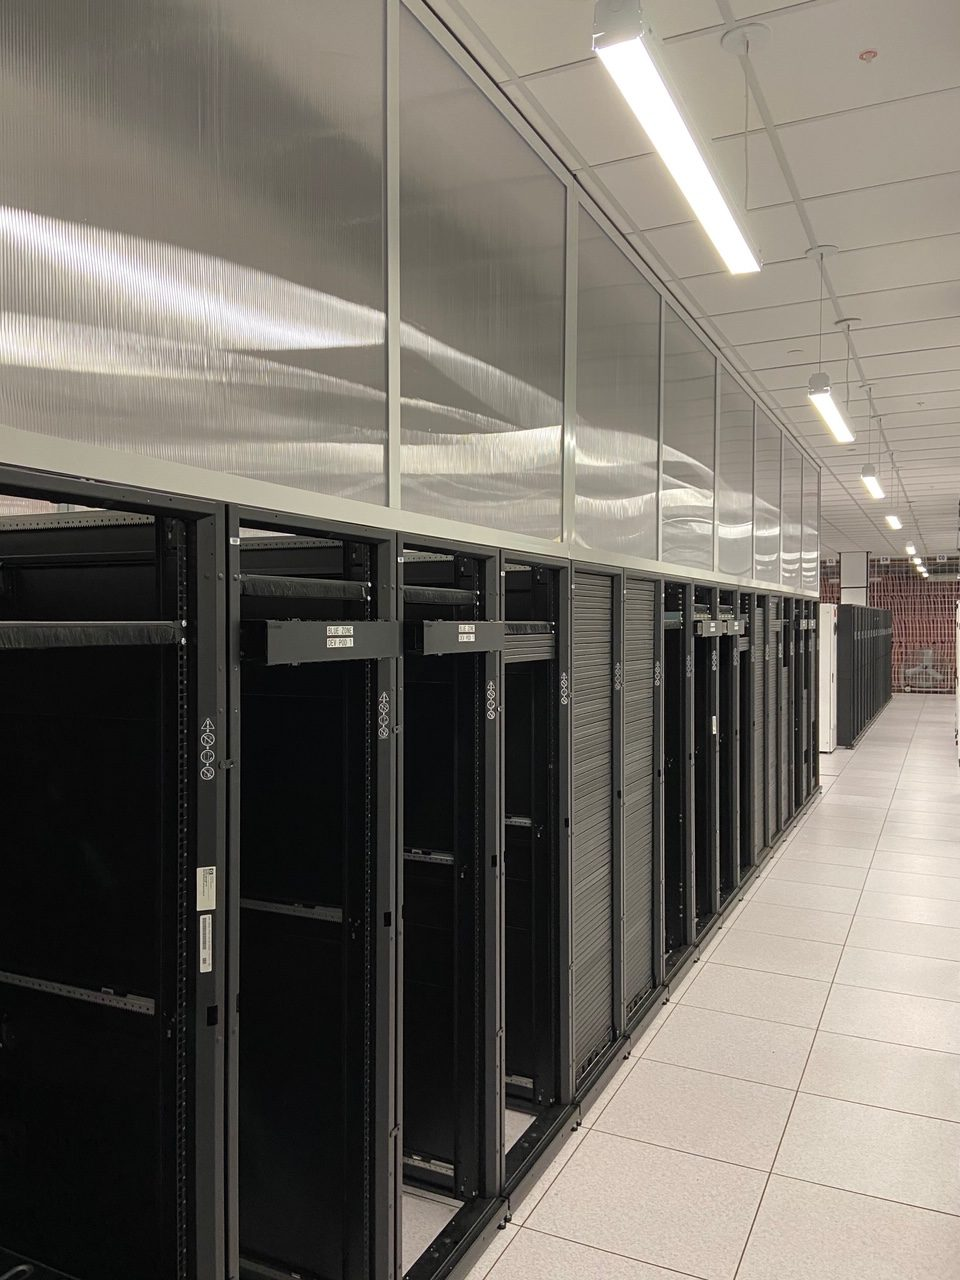 Fixed Containment Panels Data Centers rotated - Fixed Vertical Panels